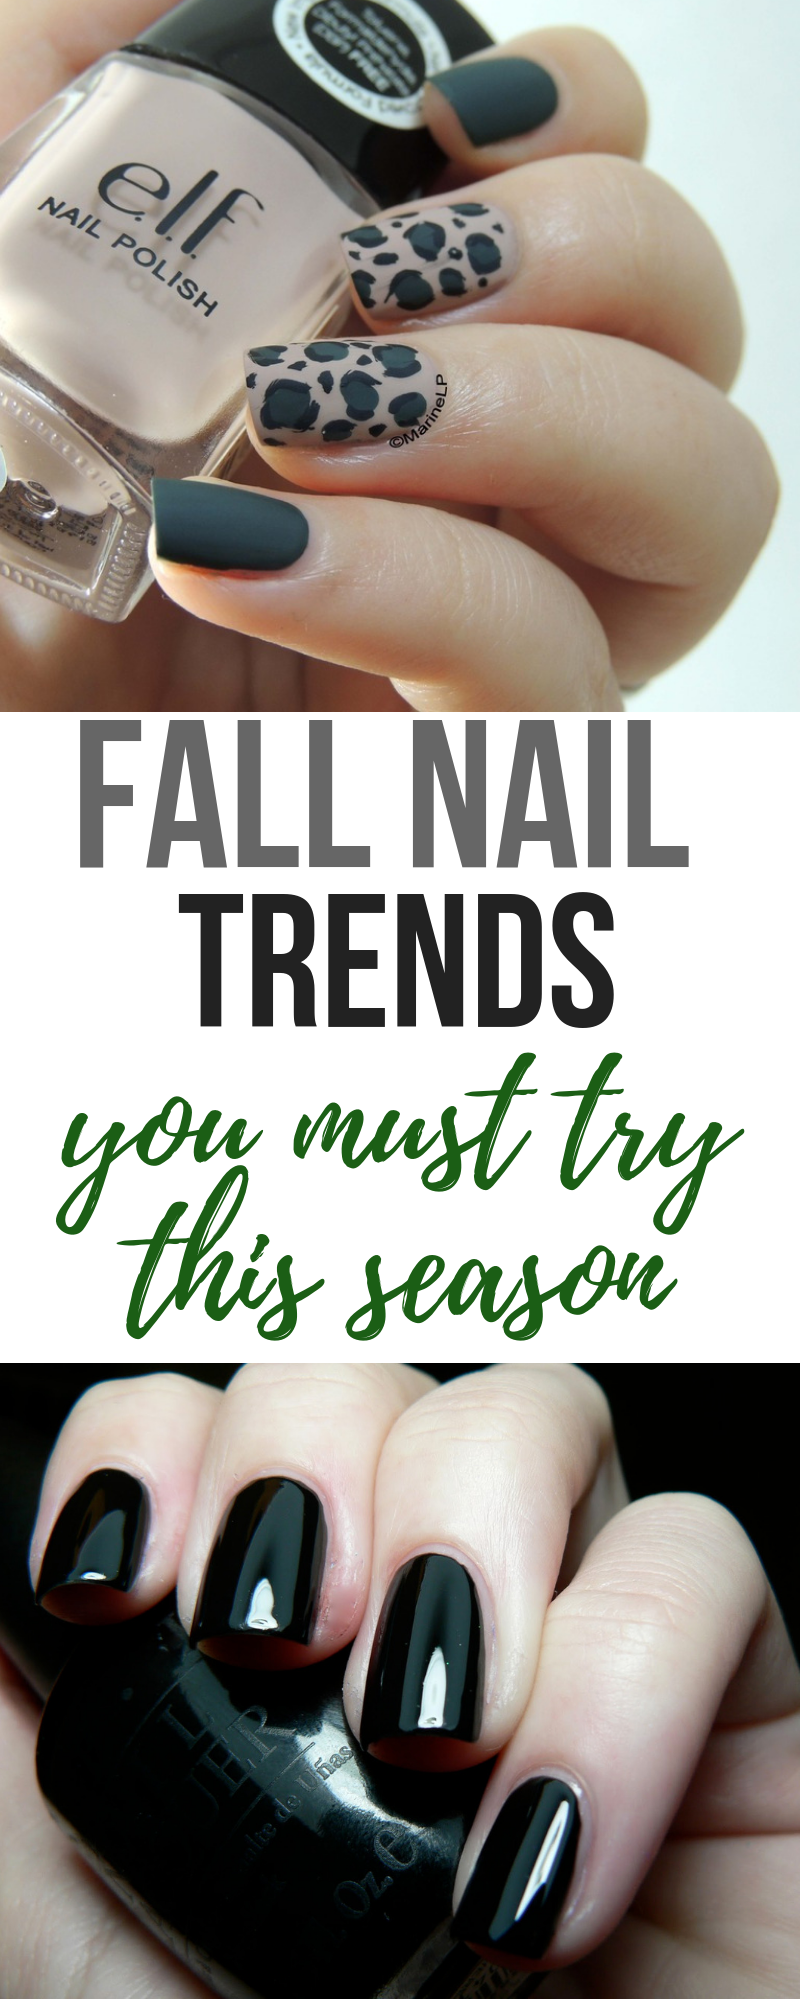 The Hottest Fall Nail Trends For 2018! Pin Now! #nails #fallnails #